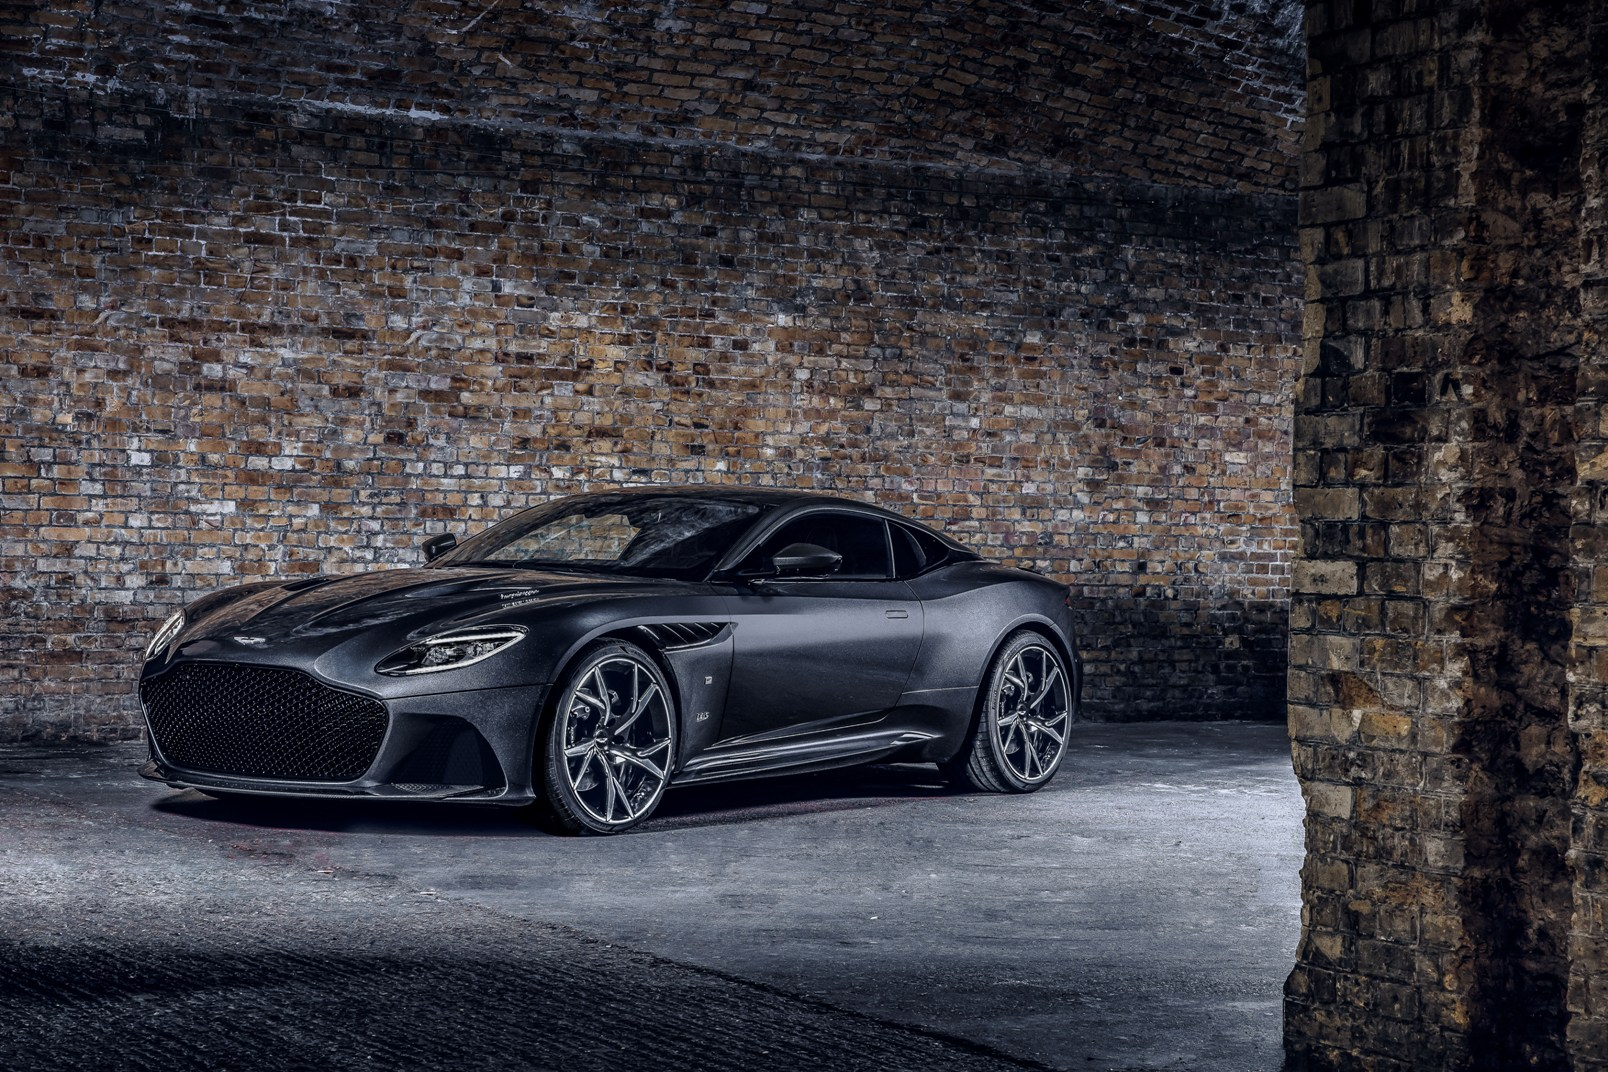 Aston Martin Dbs Superleggera 007 Edition (2)